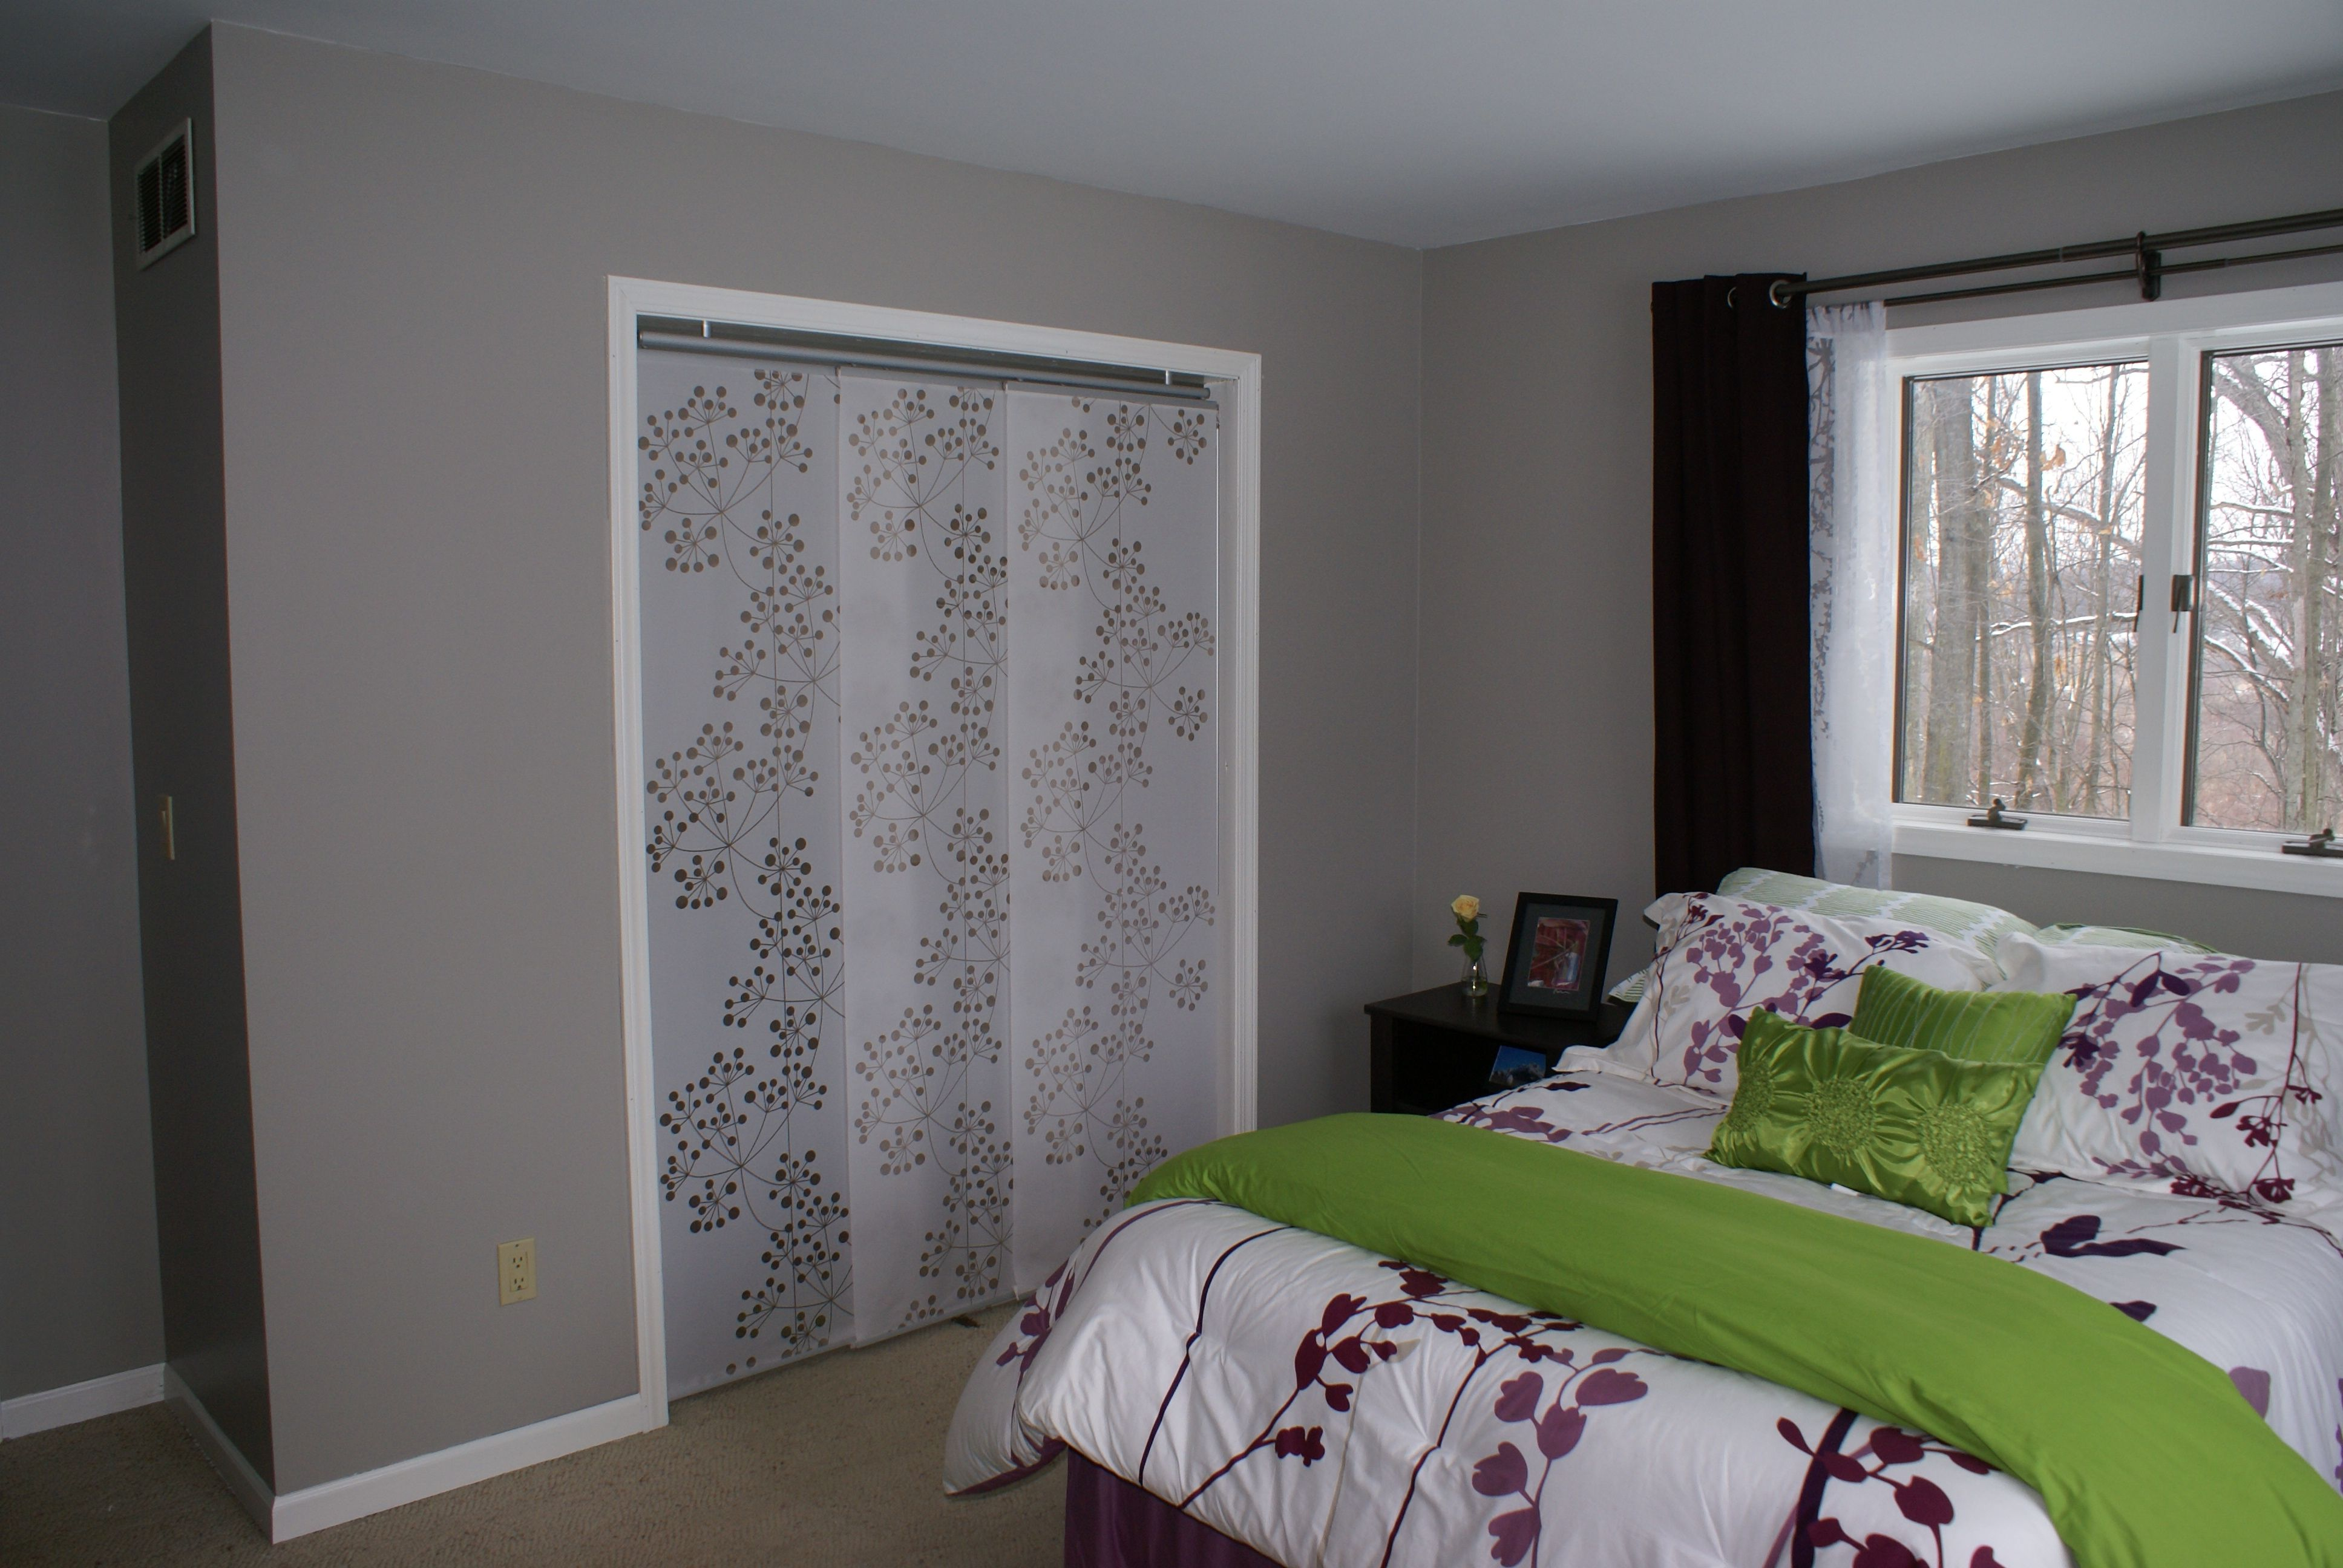 Ikea Panel Curtains As Closet Doors Could Be Used To Cover A